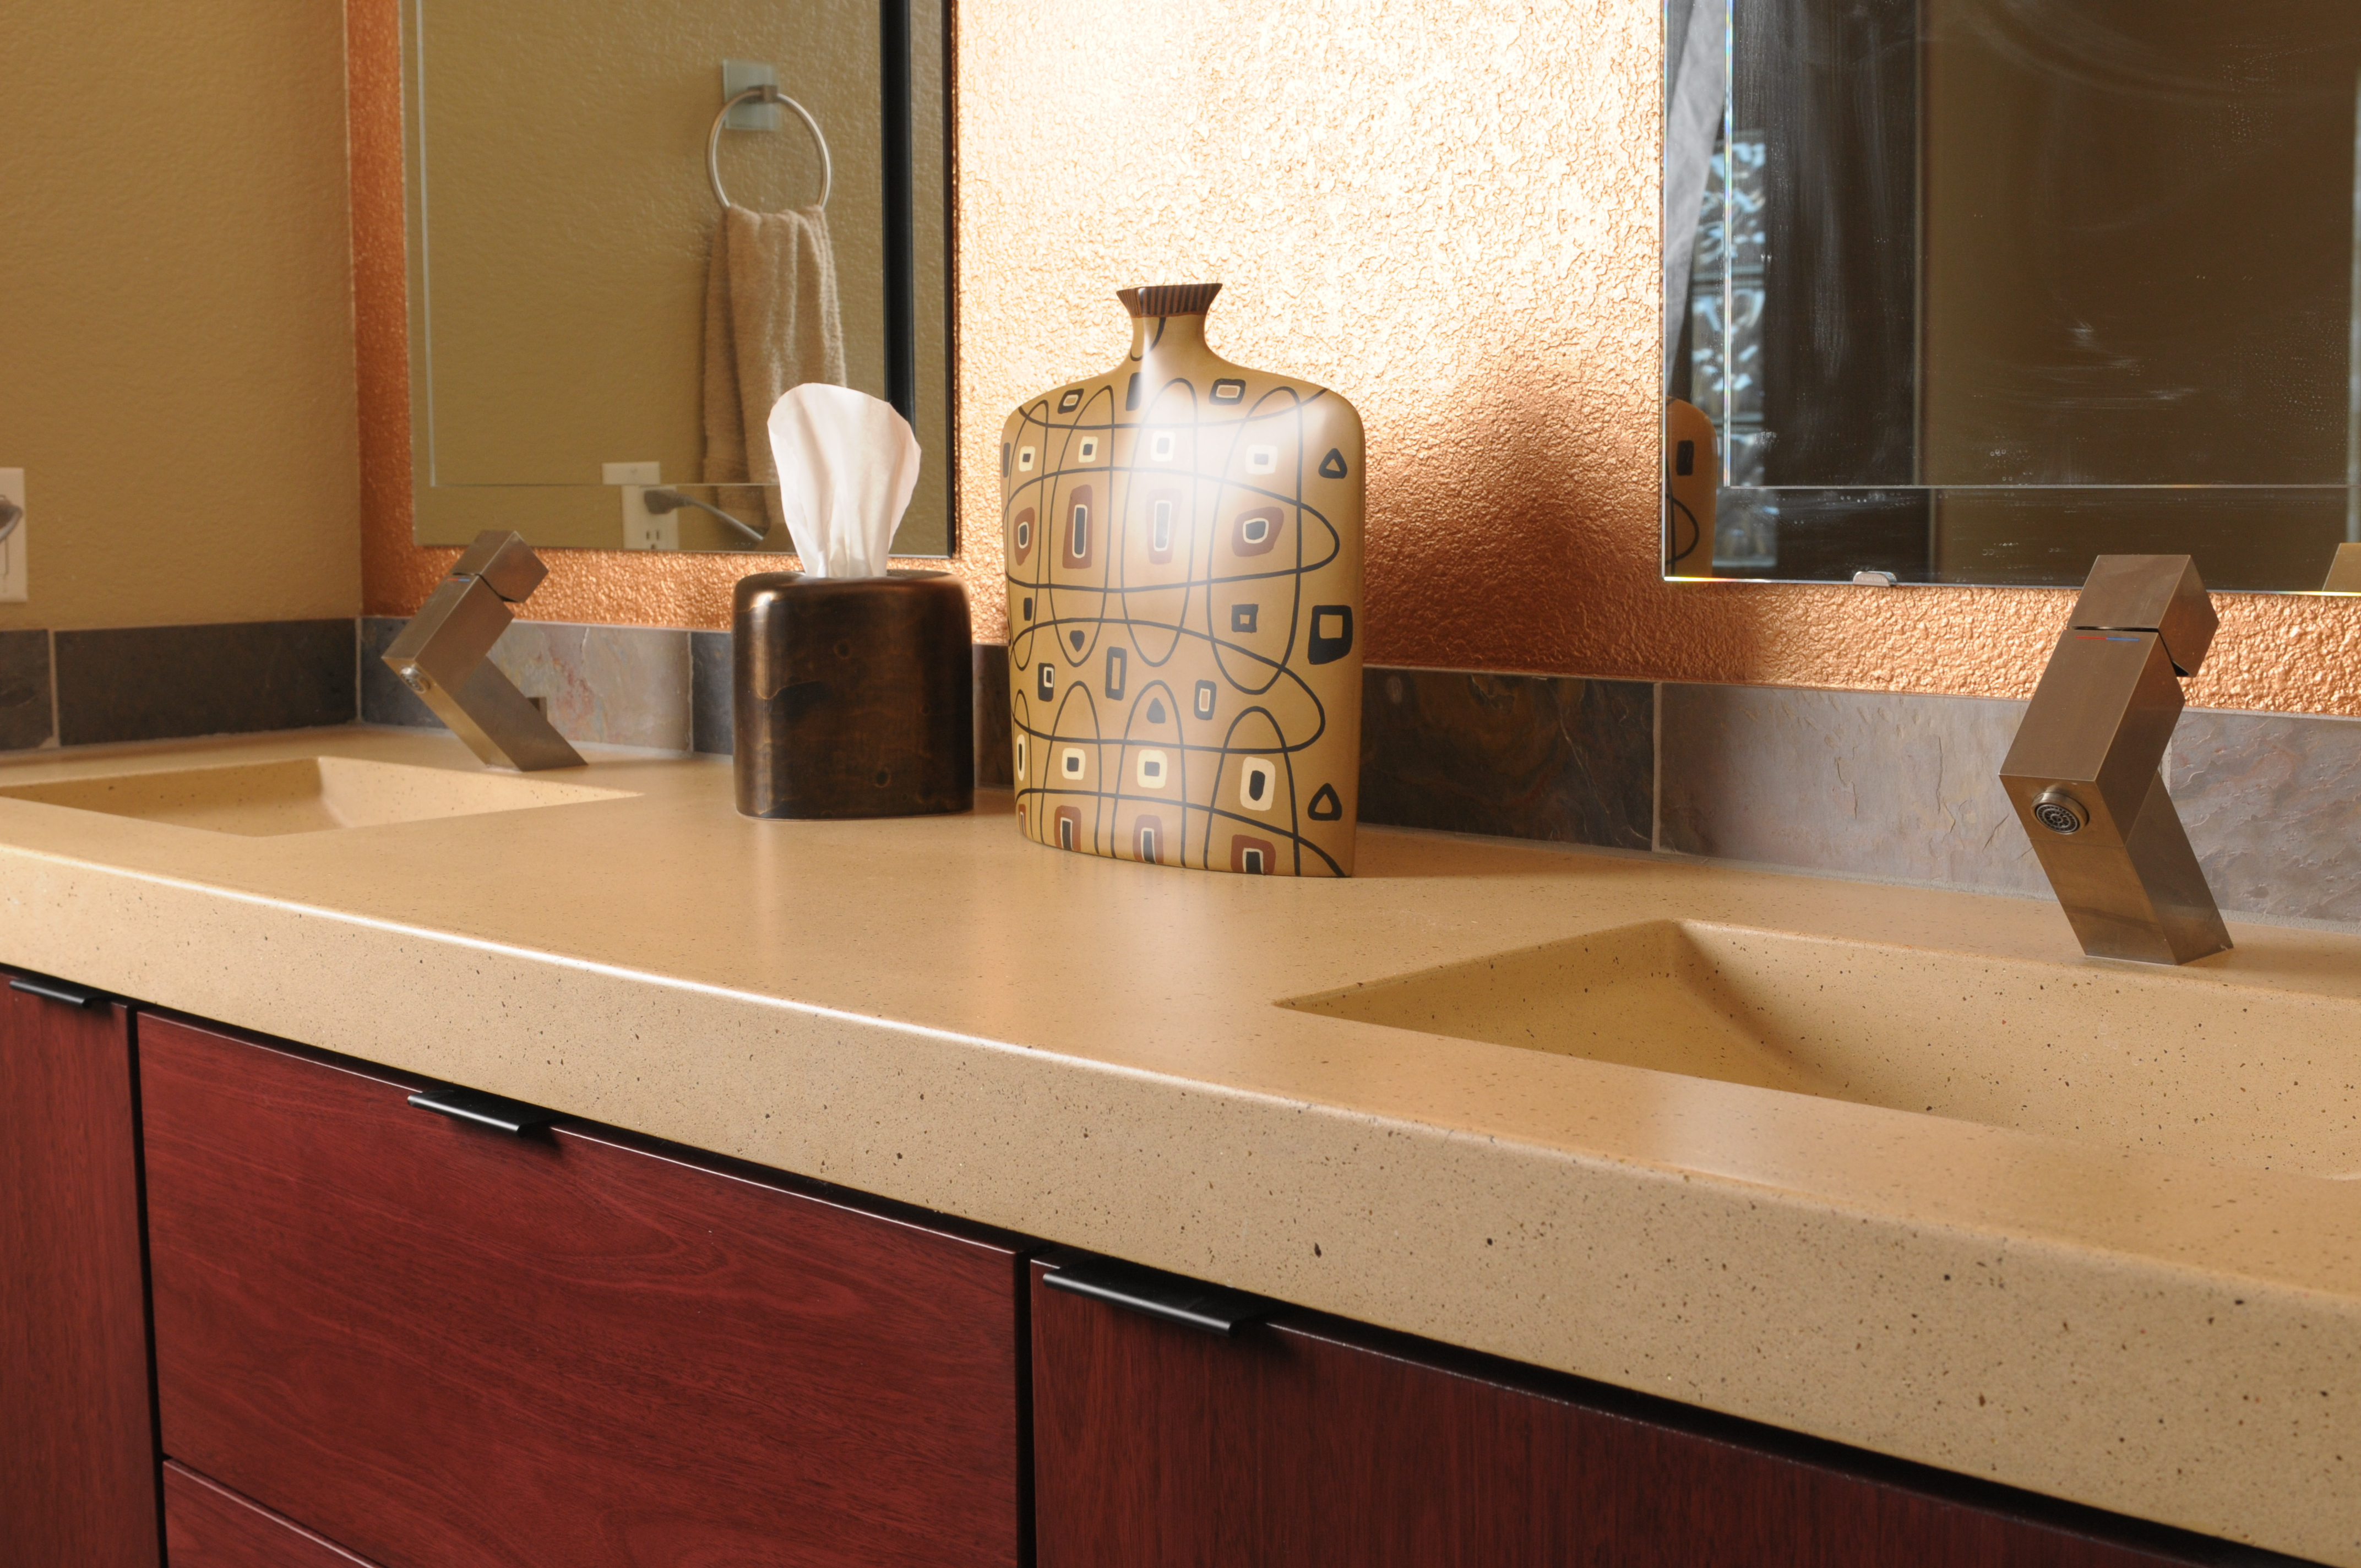 Dons Custom Longmont and Boulder Countertops and Cabinets 02 12 09 CS Design Interiors 0142 1 - Welcome